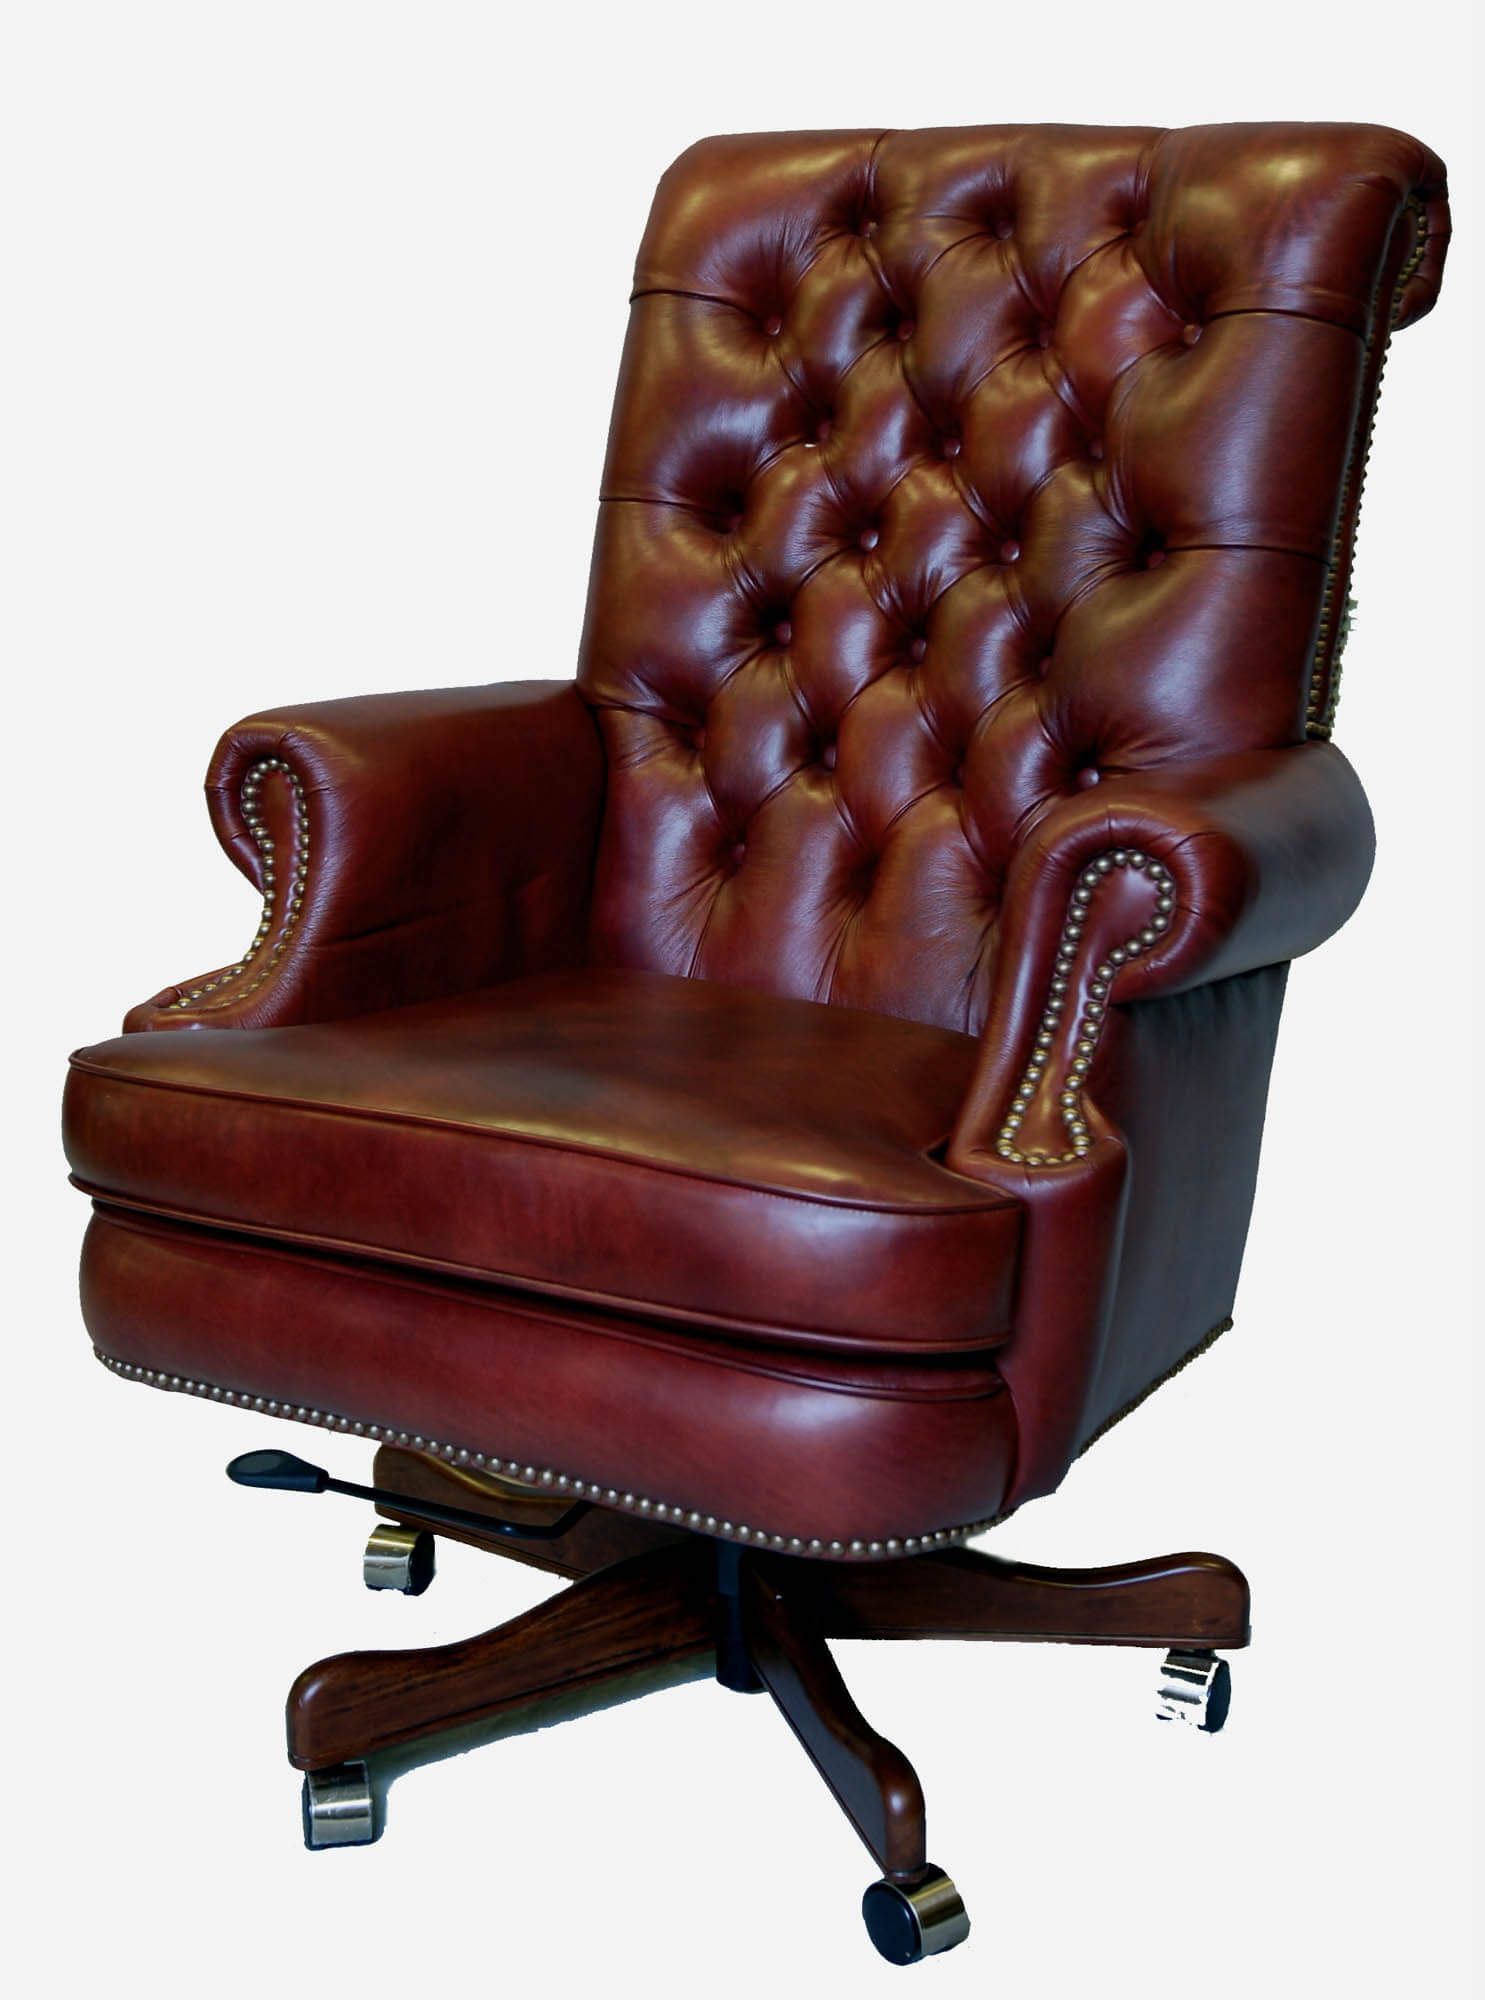 Executive Desk Chair Luxury Office Chairs Leather Office Chair